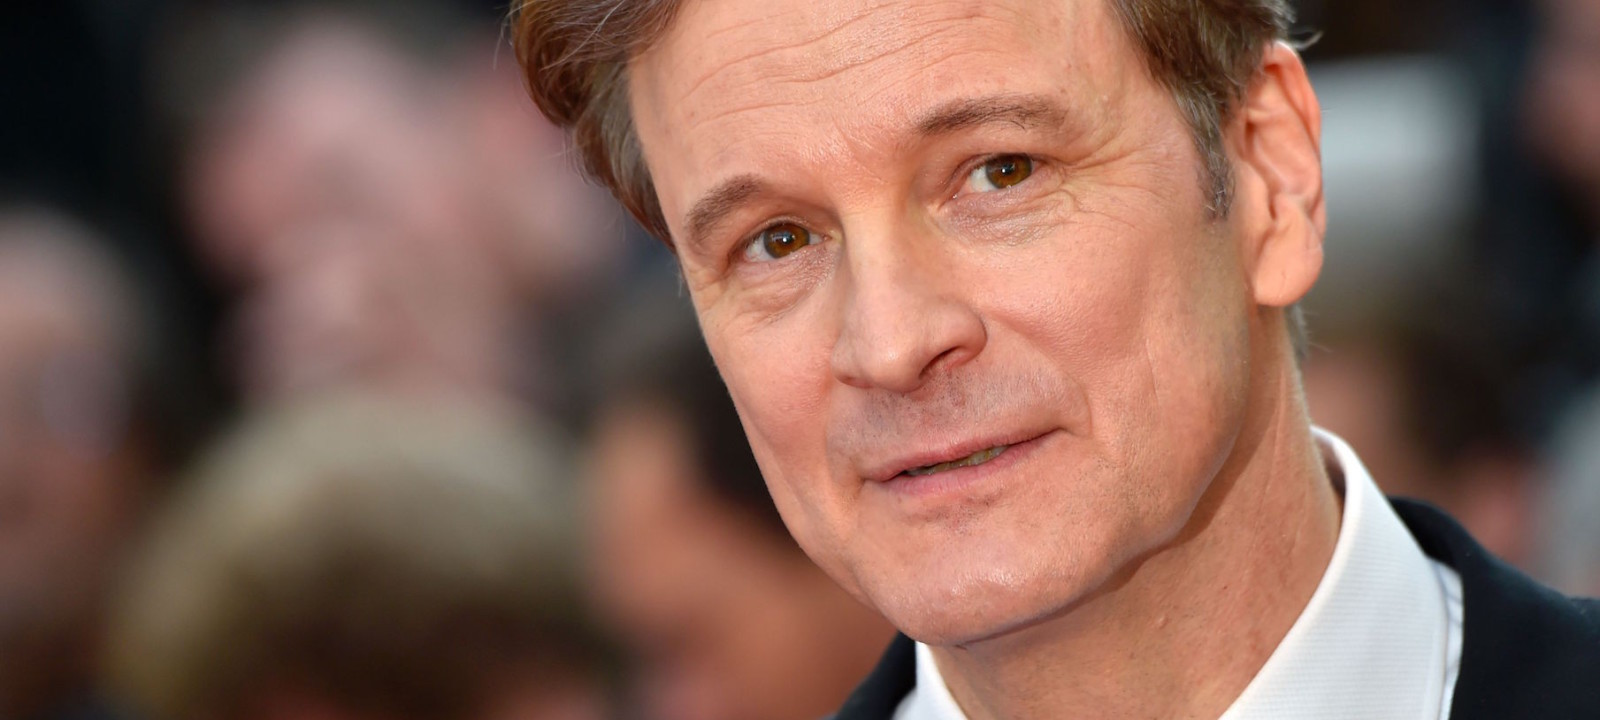 "British actor and producer Colin Firth arrives on May 16, 2016 for the screening of the film ""Loving"" at the 69th Cannes Film Festival in Cannes, southern France."